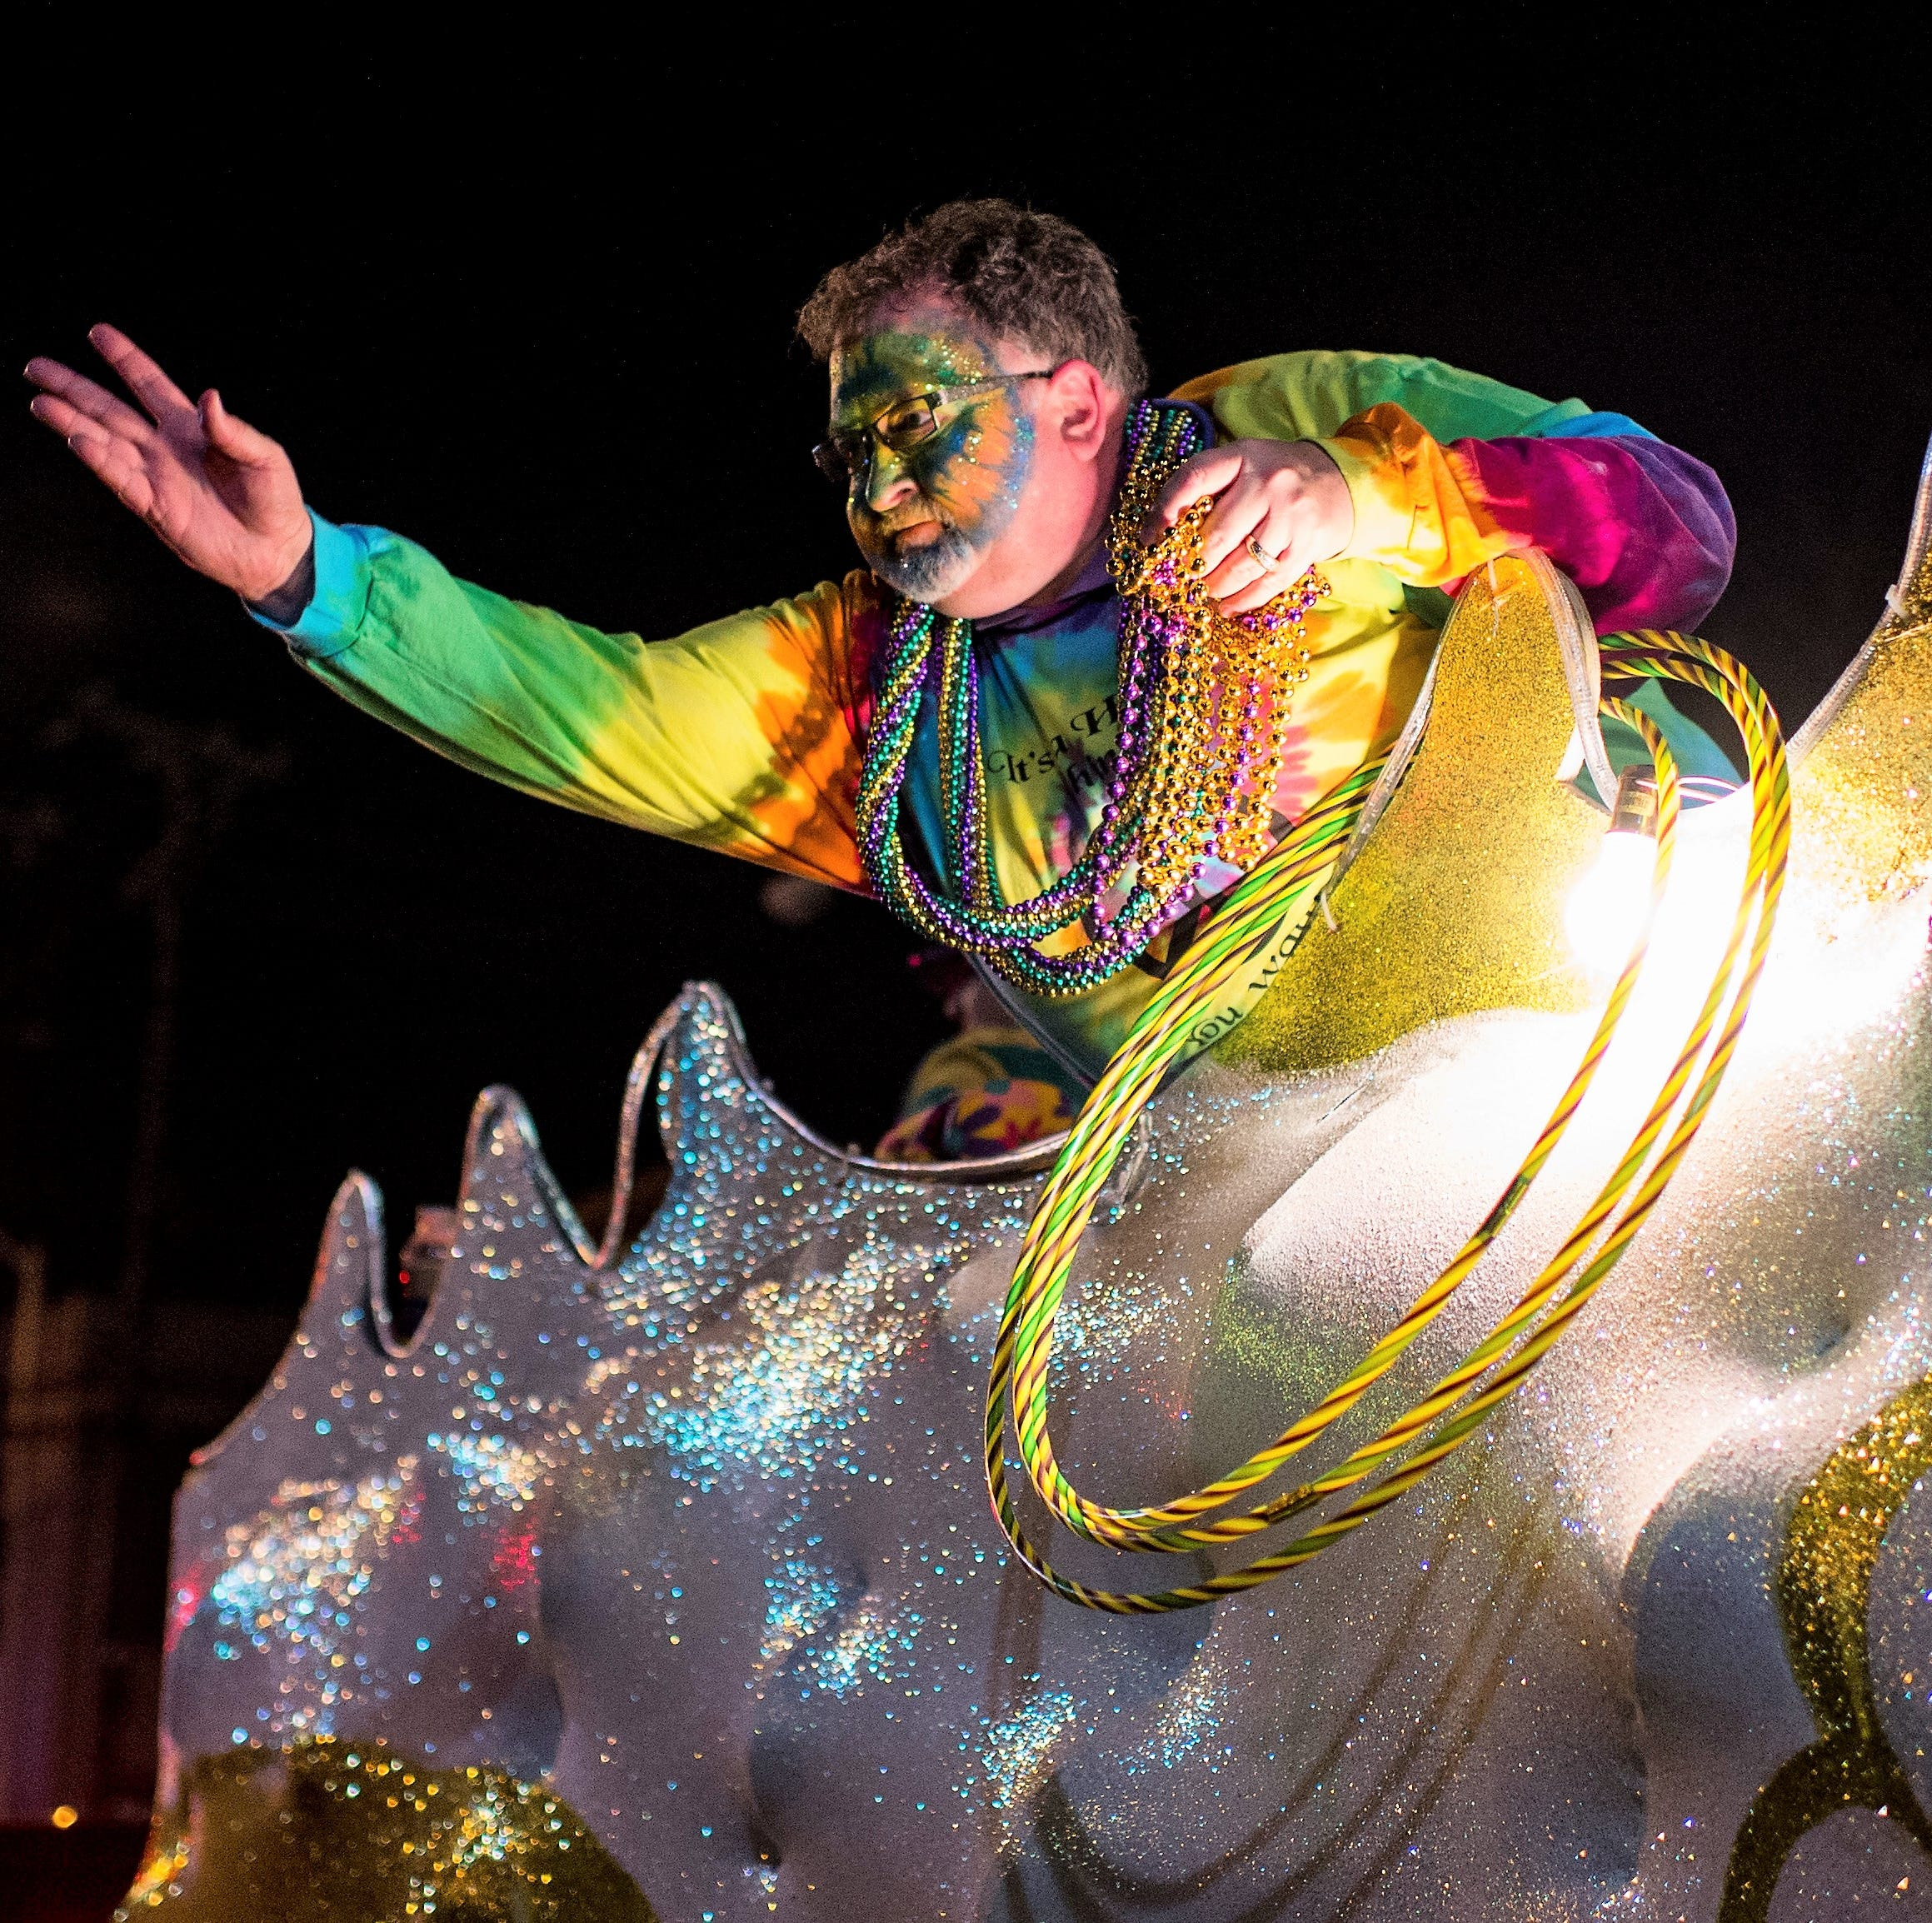 A new Friday night Mardi Gras parade? Leaders say maybe